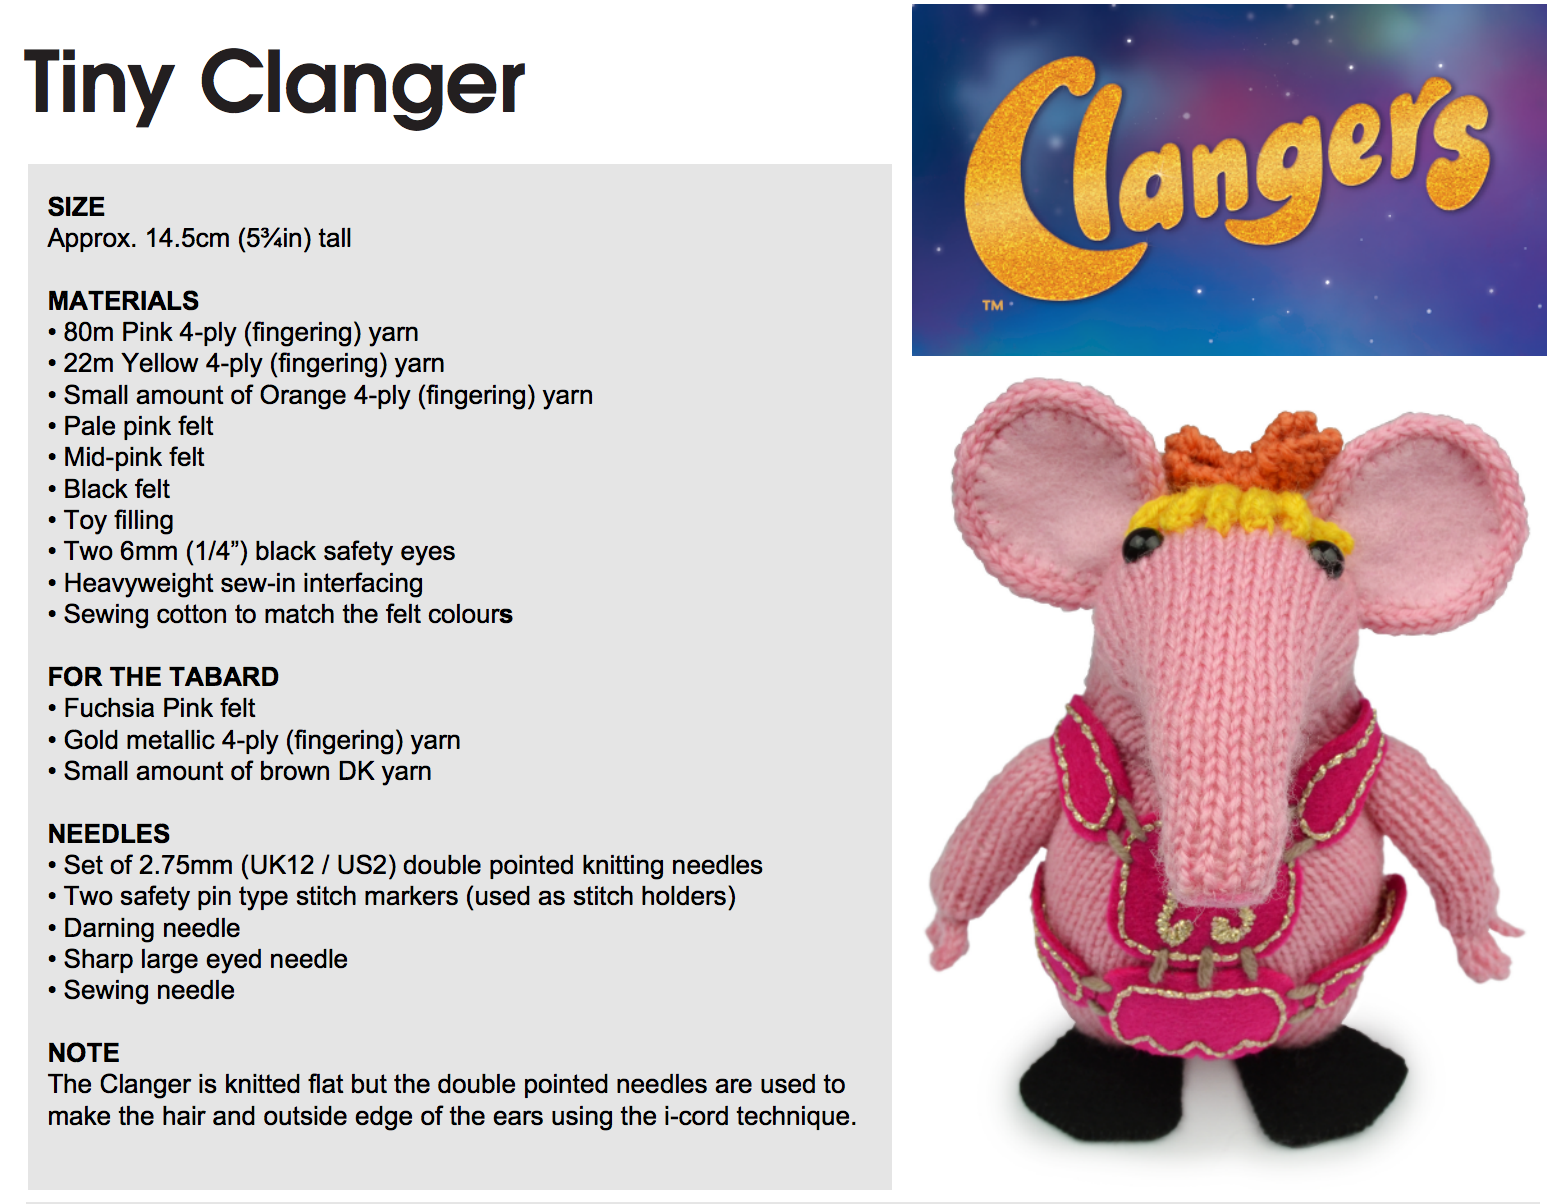 Knit your own Tiny Clanger! #clangers #knitting | Crochet and knit ...